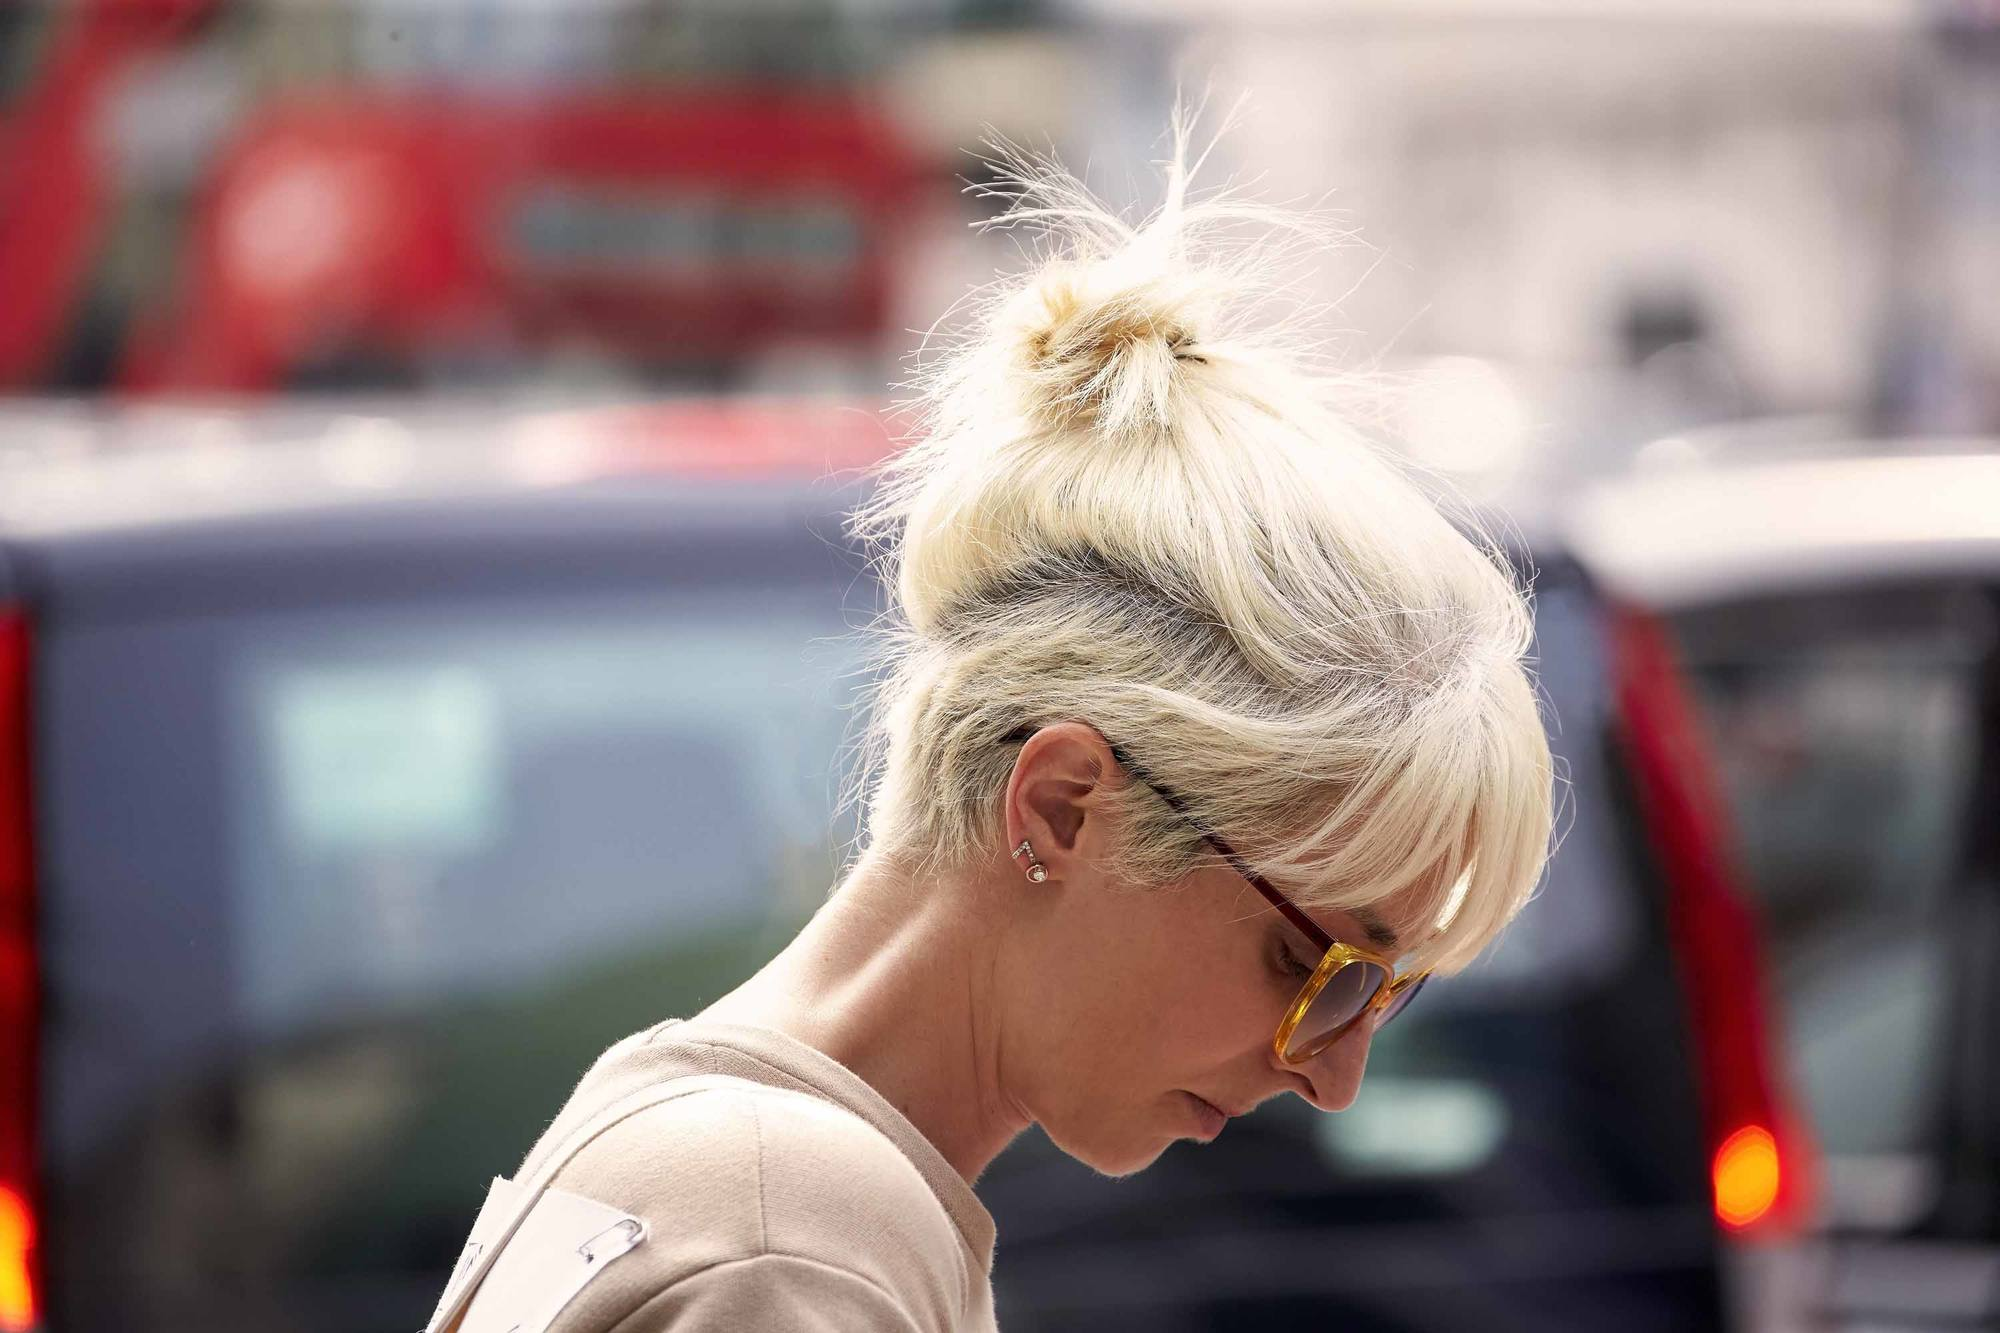 A sexy undercut updo is a quirky hairstyles that is never boring